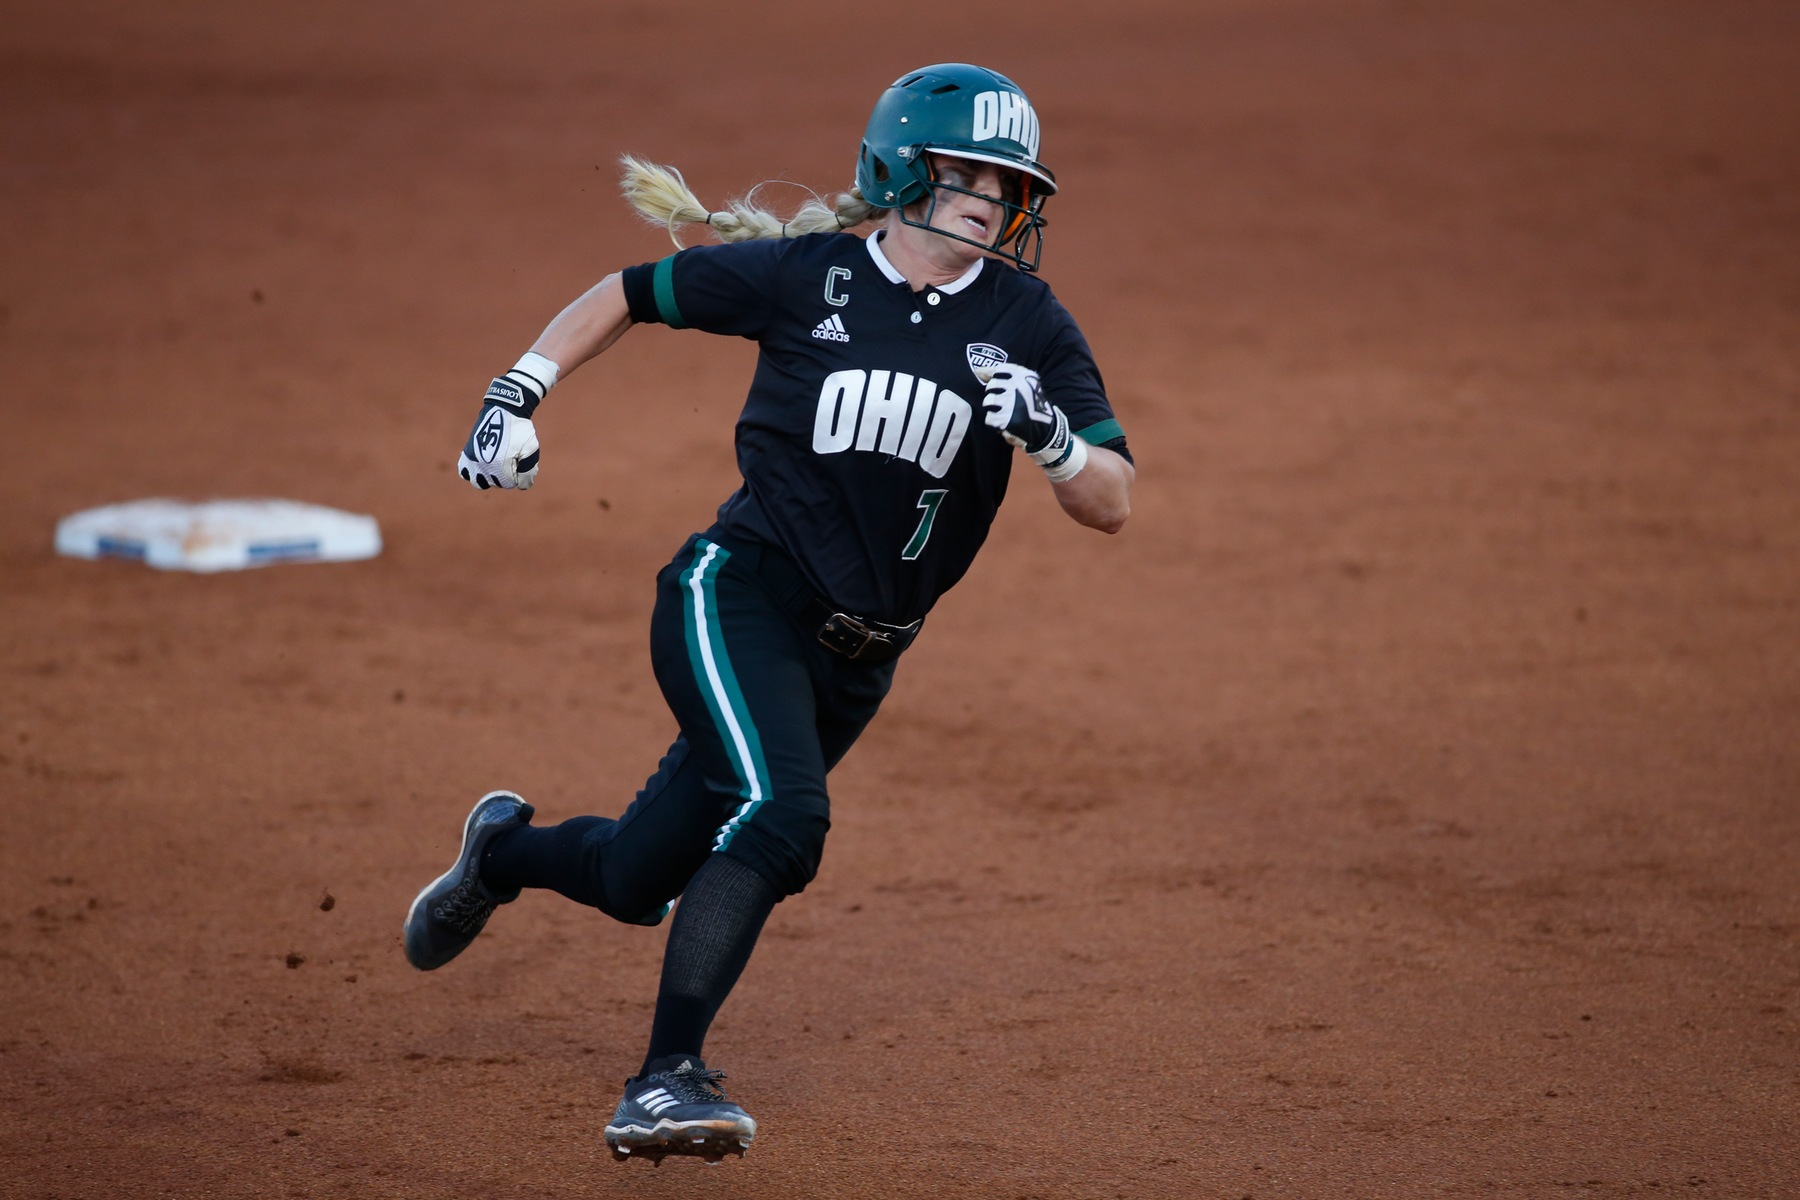 Ohio Softball Drops Rain Delayed Thriller to JMU, 2-1, in NCAA Regional Opener